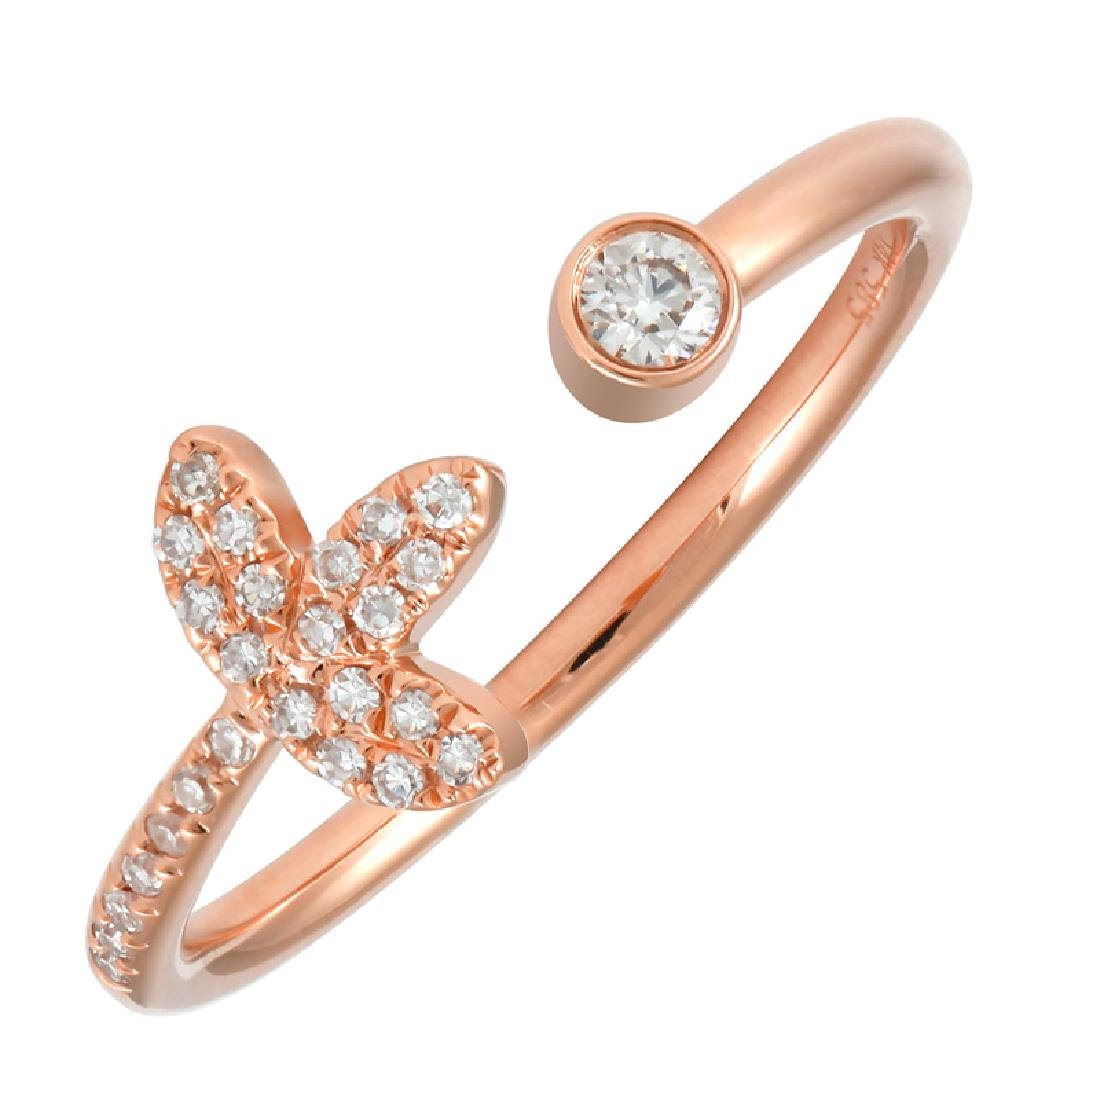 14KT Rose Gold Women's Diamond Ring - 2